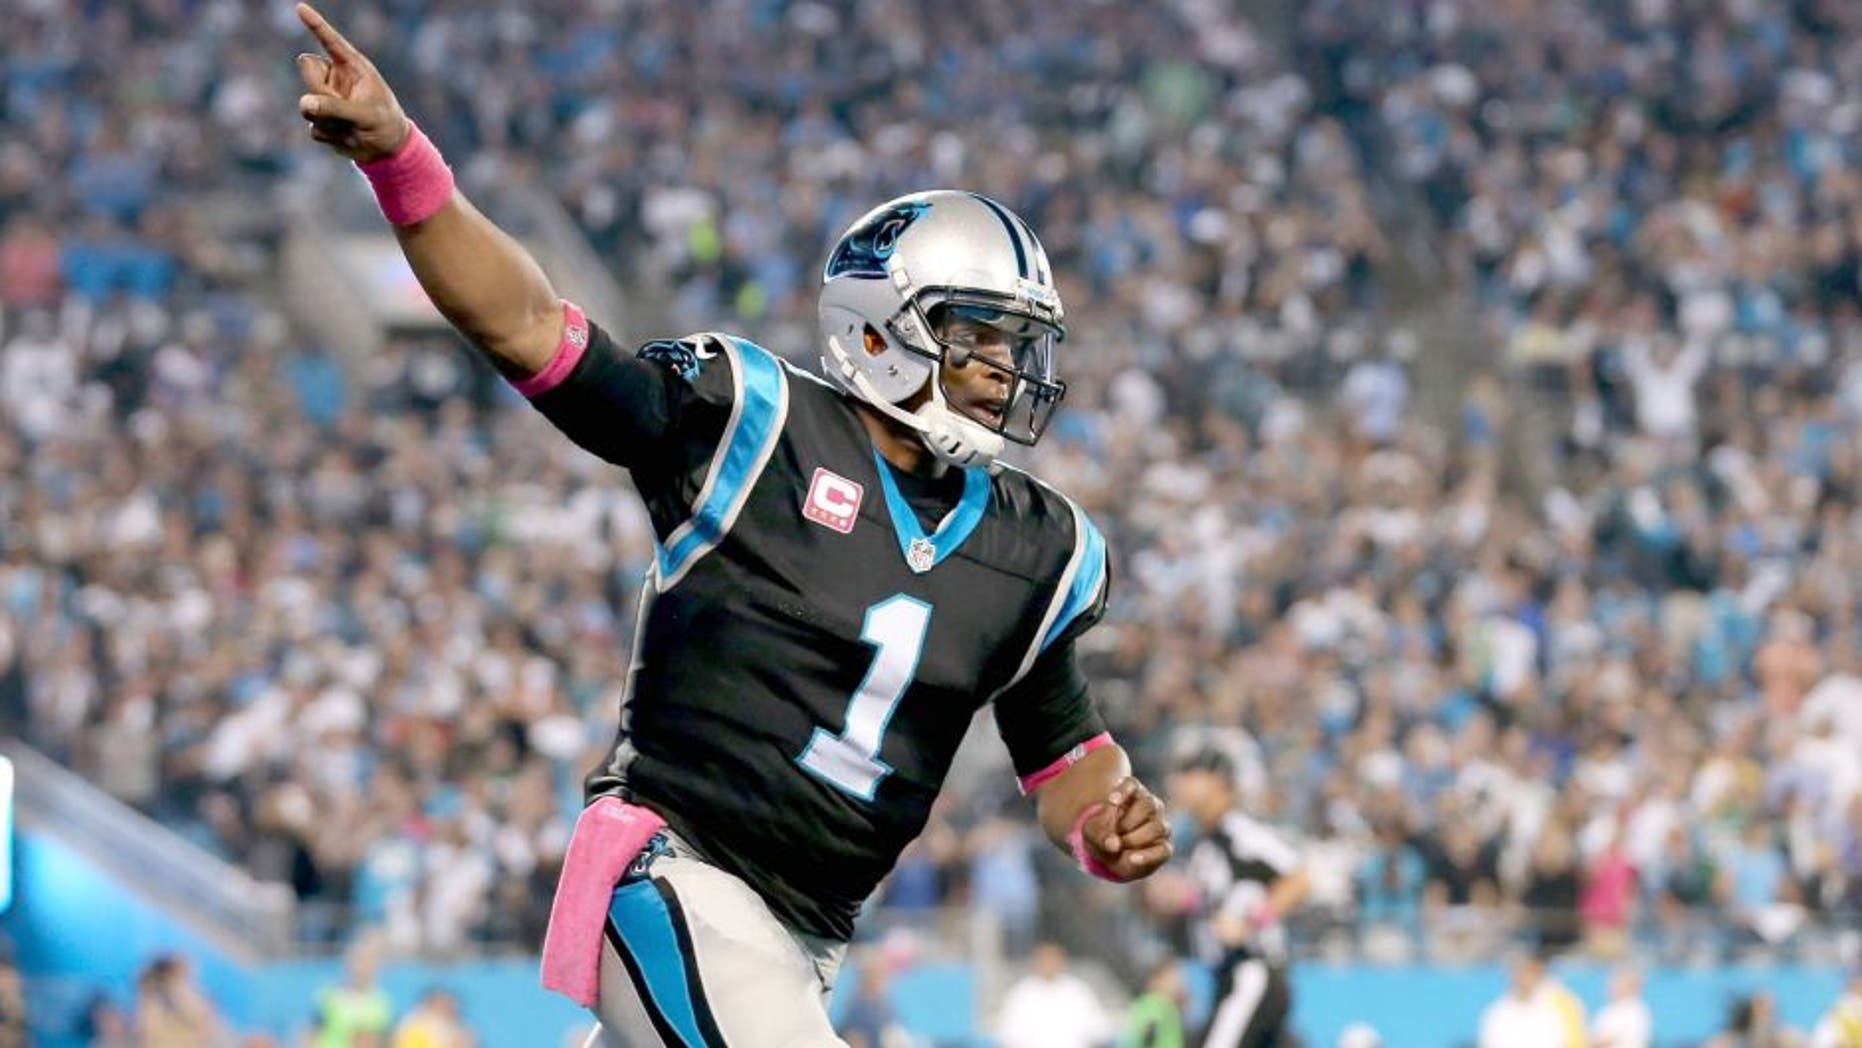 CHARLOTTE, NC - OCTOBER 25: Cam Newton #1 of the Carolina Panthers salutes the crowd after their first touchdown against the Philadelphia Eagles at Bank of America Stadium on October 25, 2015 in Charlotte, North Carolina. (Photo by Streeter Lecka/Getty Images)